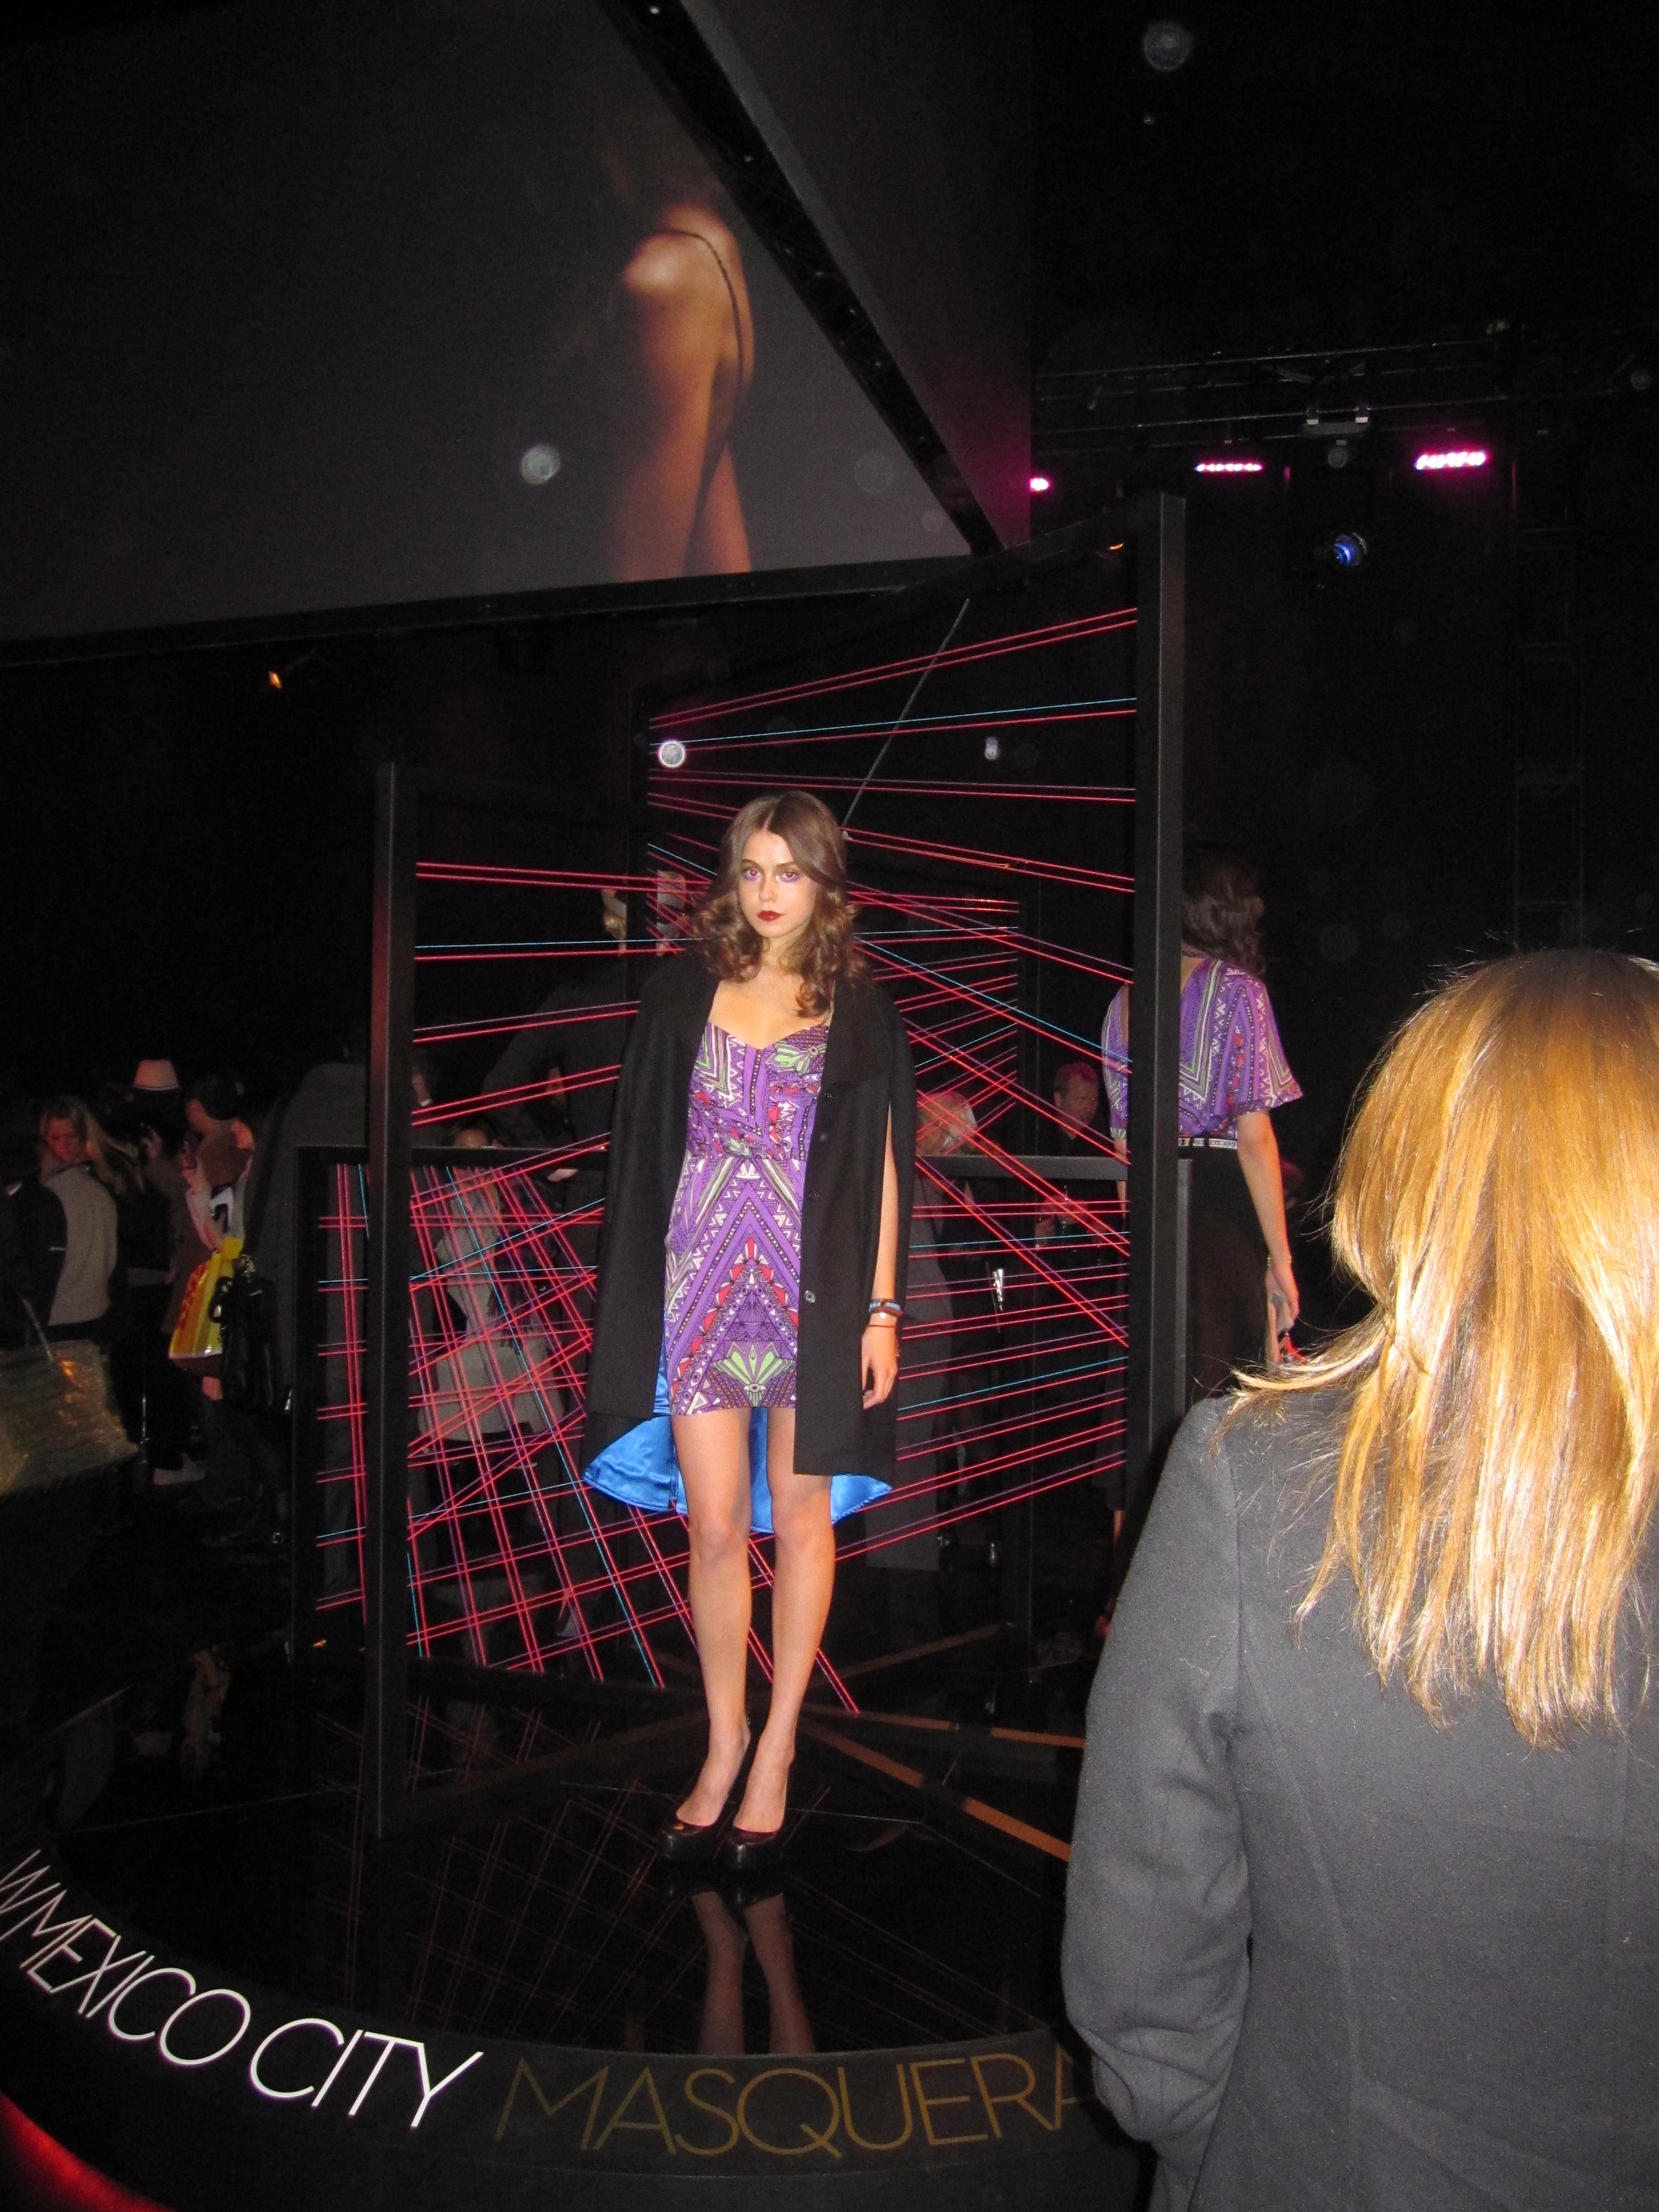 003 Flashback to NYC Fashion Week Spring 2011~ With Love necklace collection